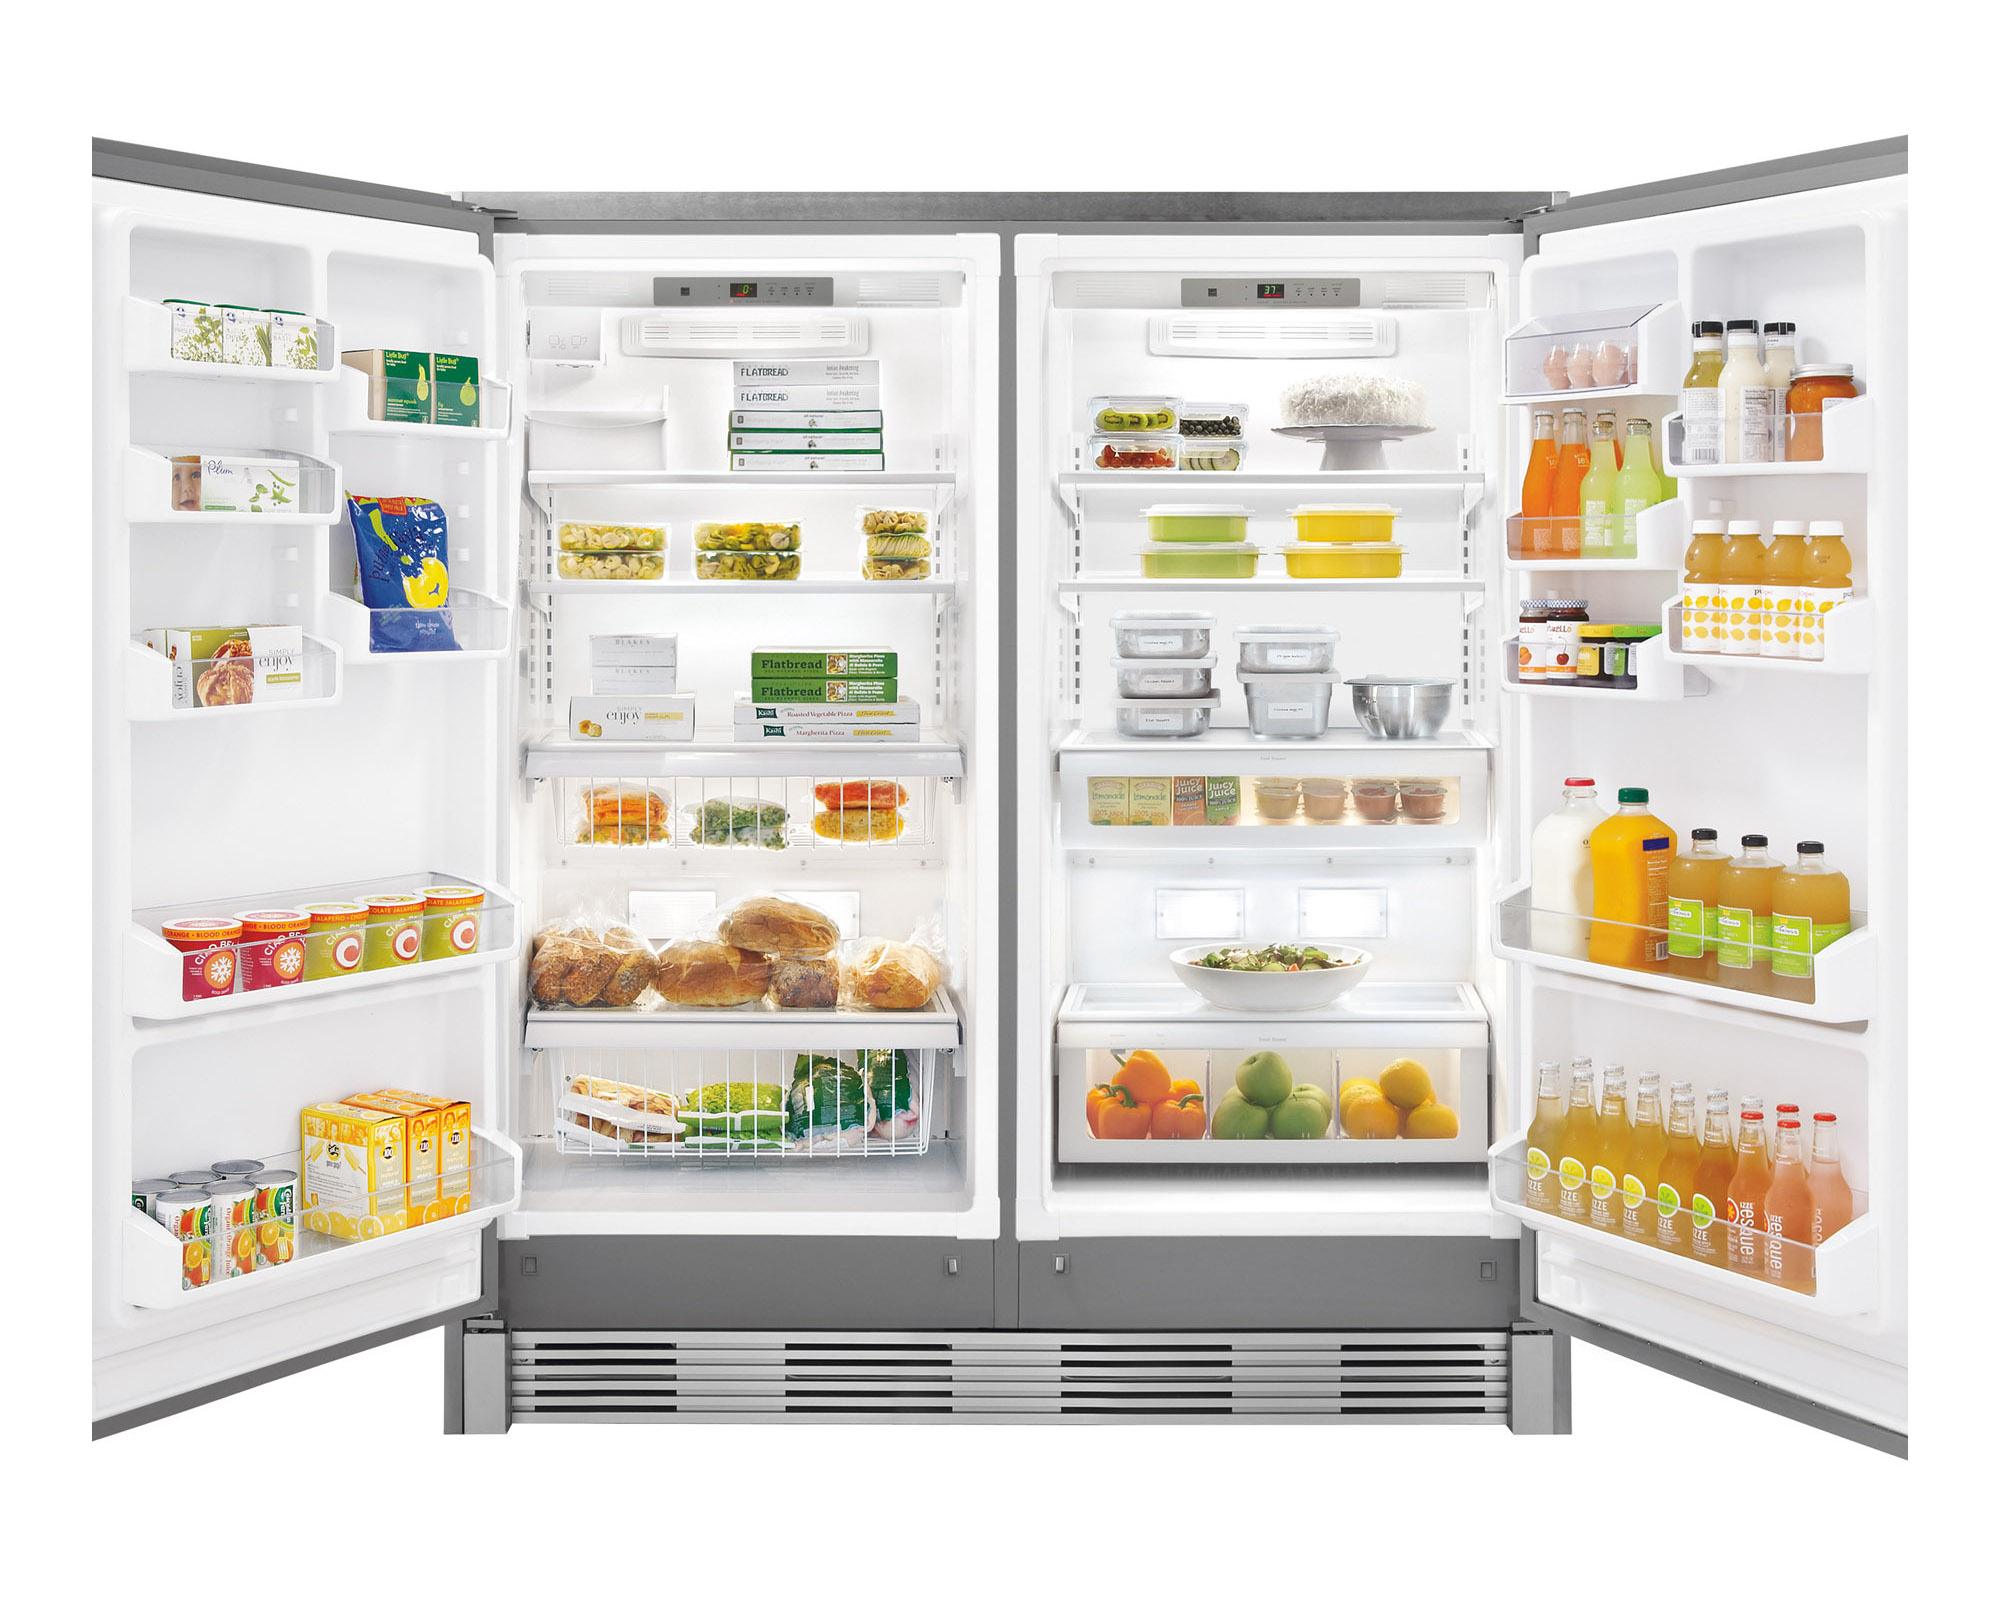 Frigidaire Professional Series 18.6 cu. ft. Freezerless Refrigerator - Stainless Steel